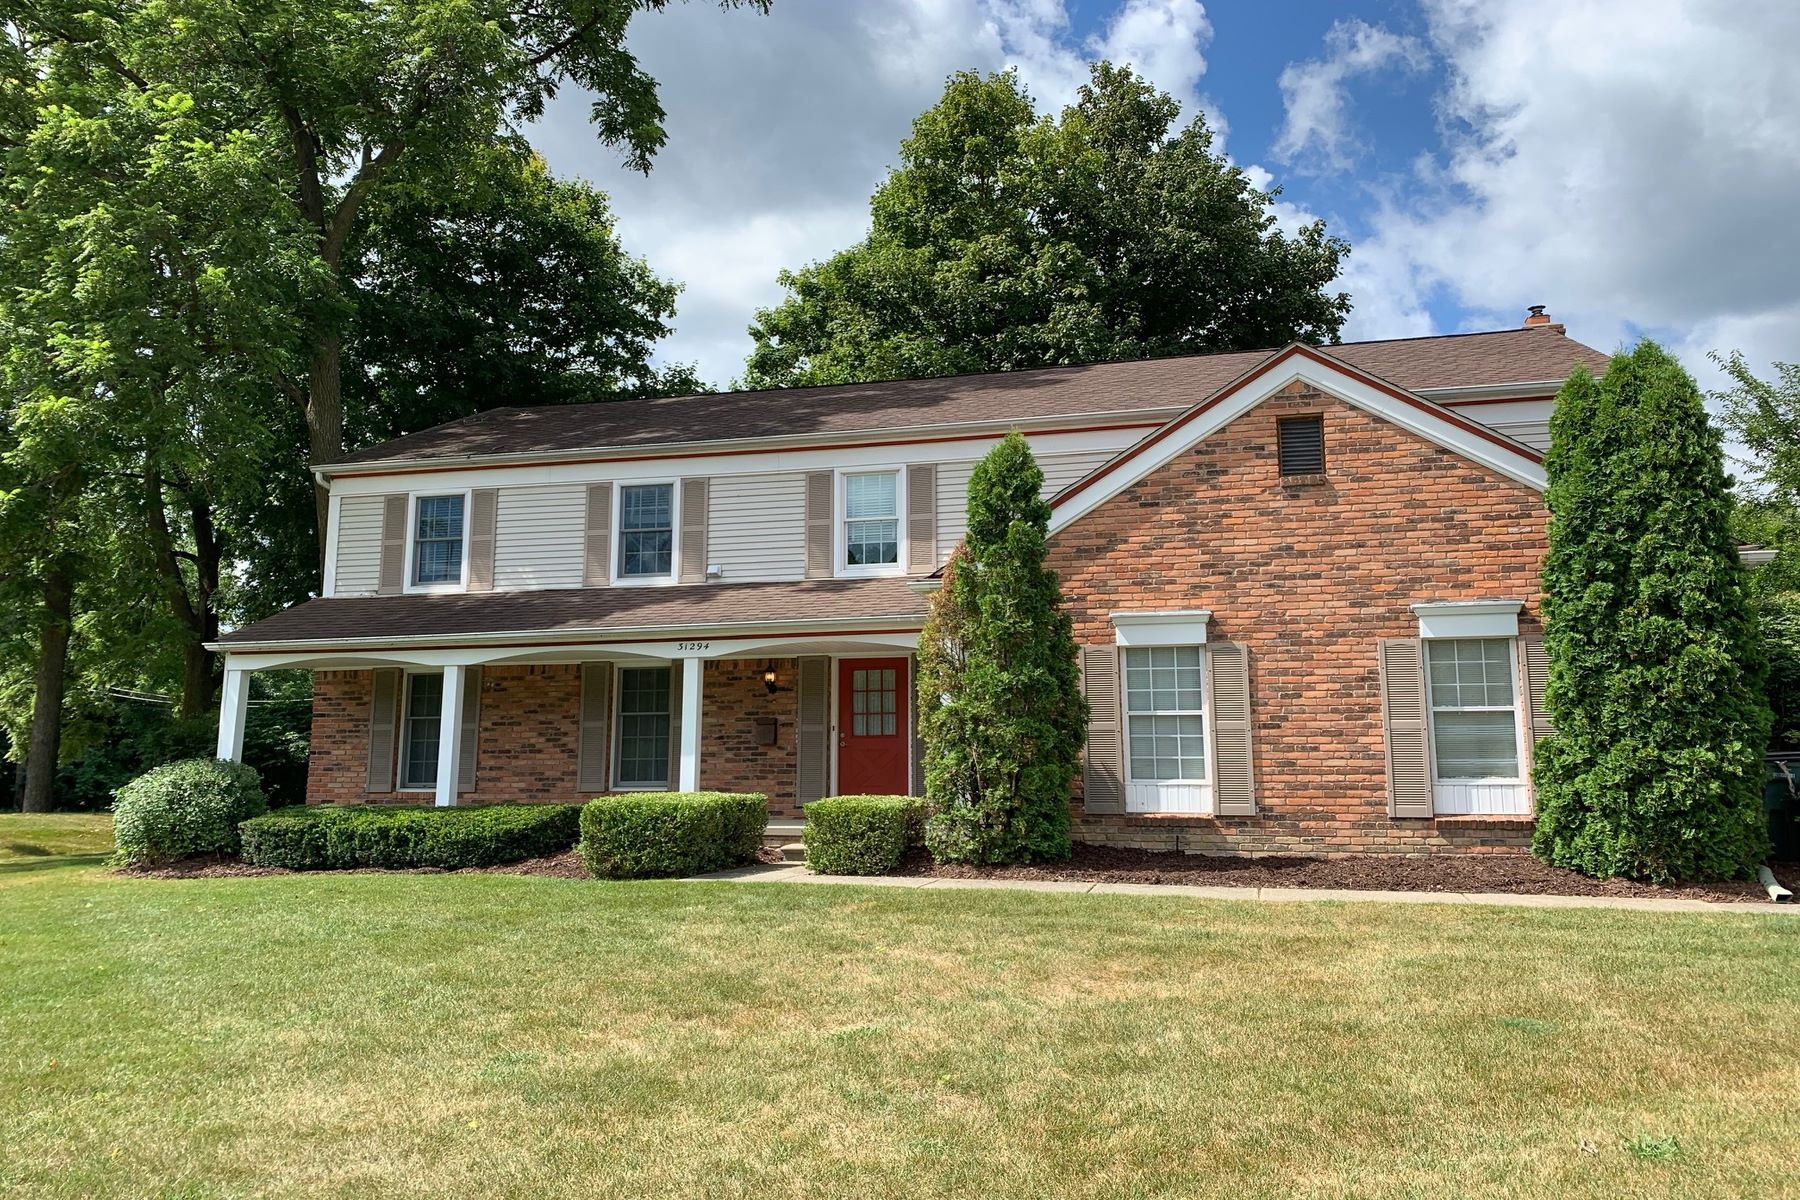 Single Family Homes for Sale at Bingham Farms Village 31294 Old Stage Road Bingham Farms, Michigan 48025 United States